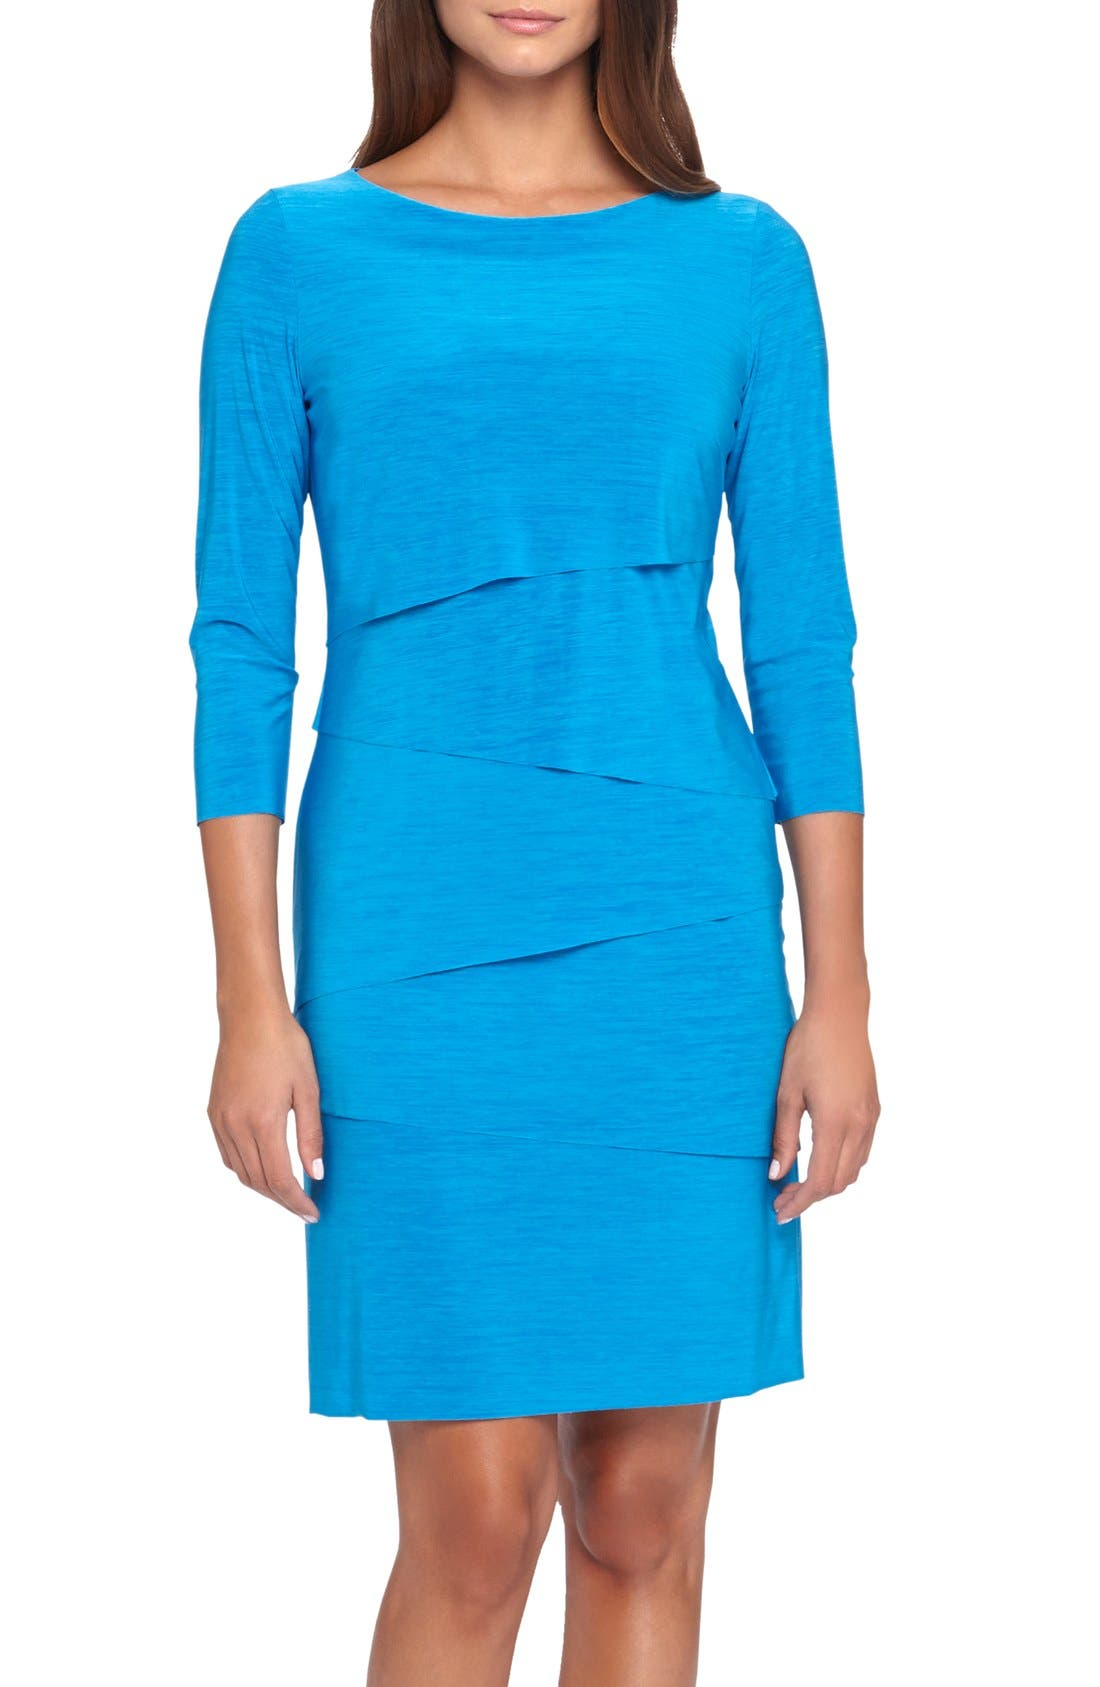 Alternate Image 1 Selected - Tahari Tiered Jersey Sheath Dress (Regular & Petite)